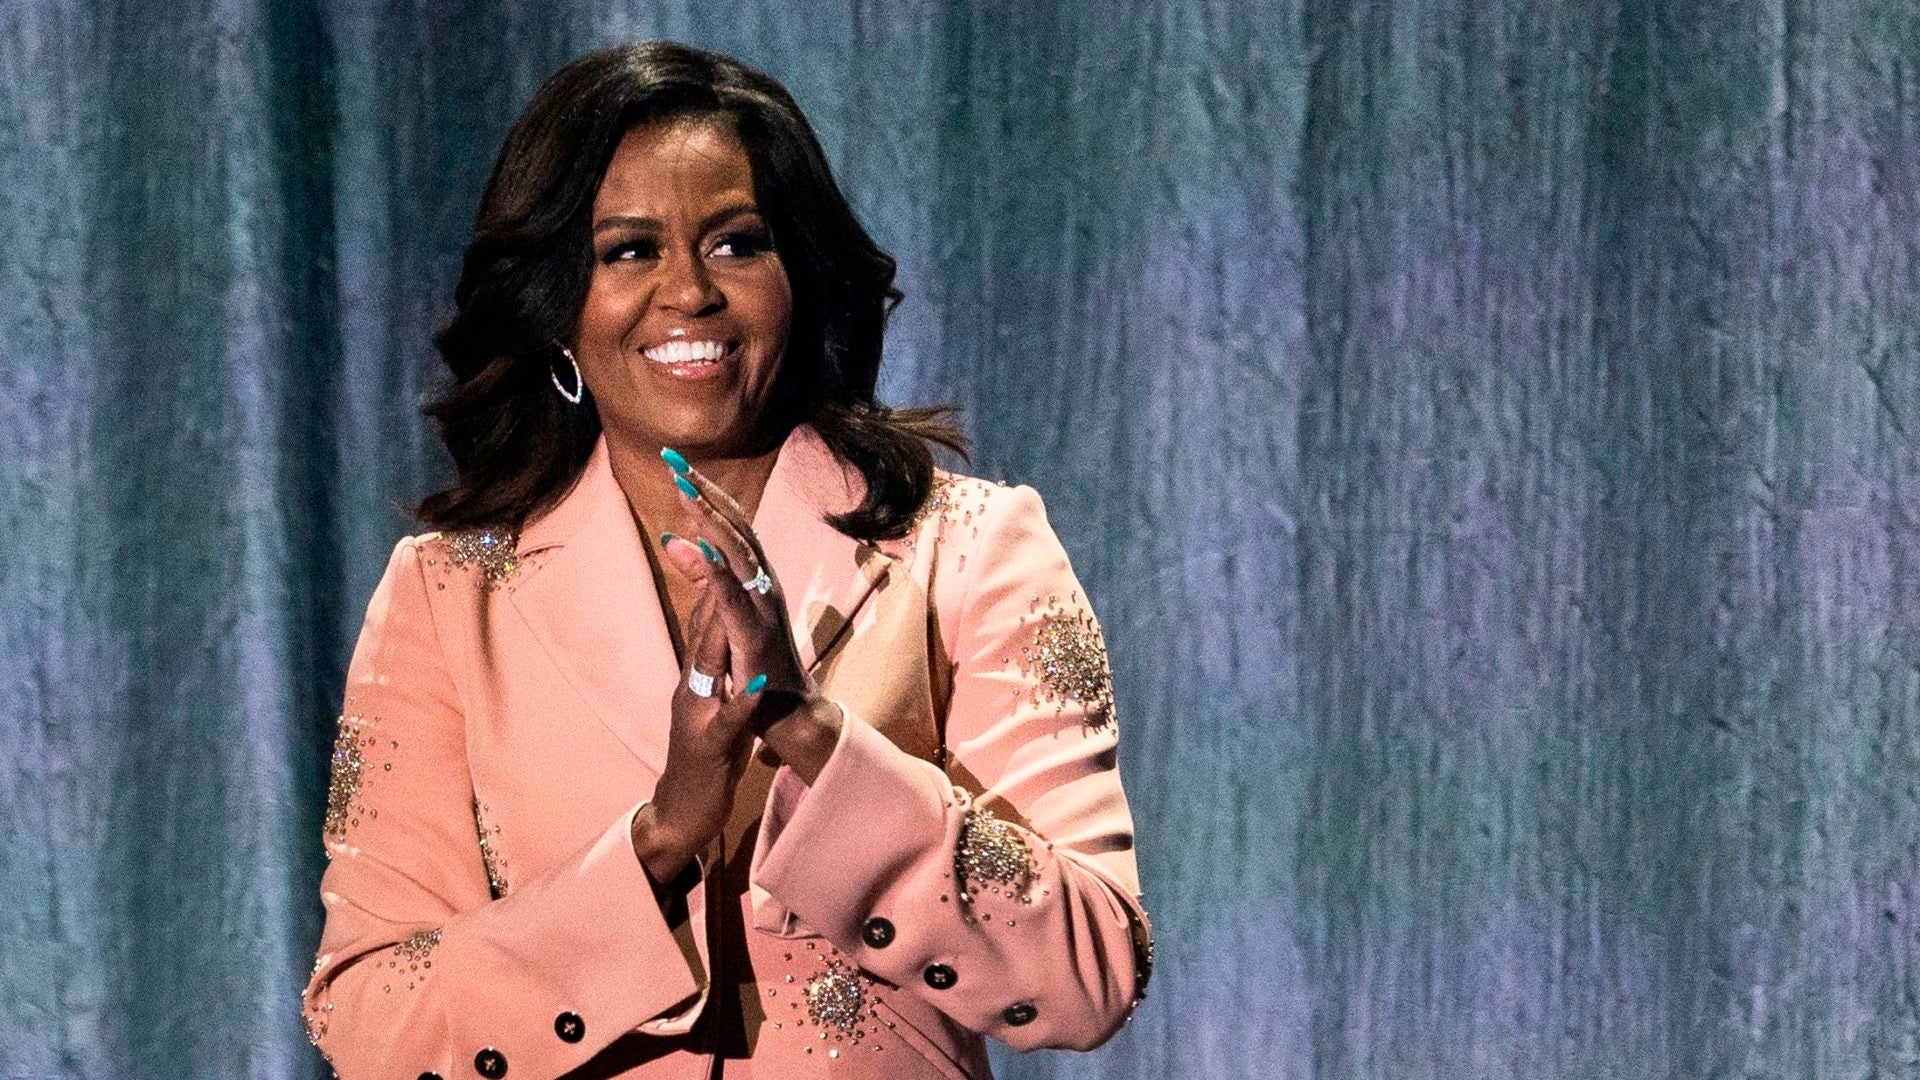 Michelle Obama Remembers 'Emotional' Day Dropping Daughter Sasha Off At College